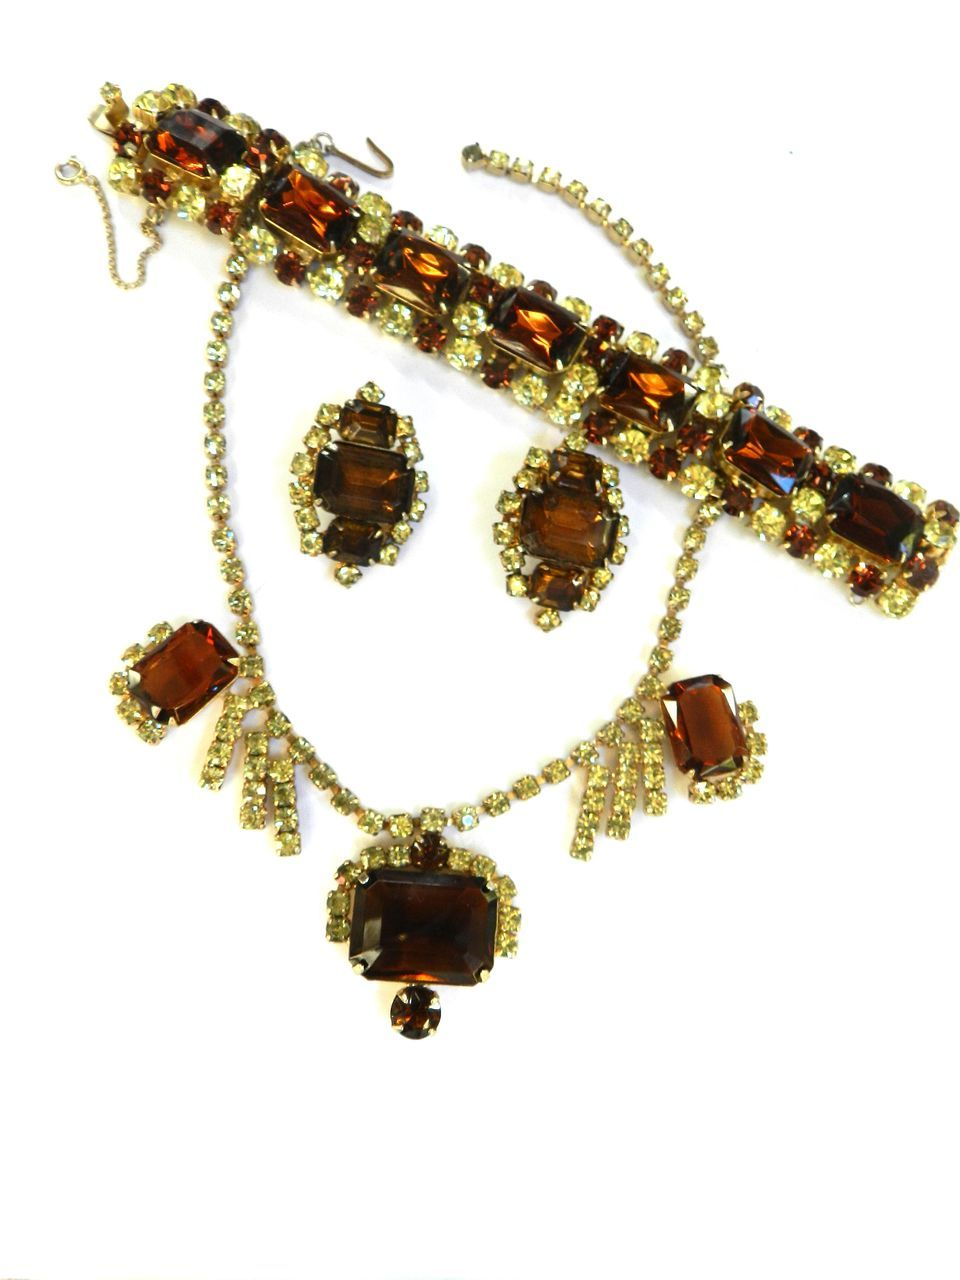 High End Designer Big Topaz and Jonquil Vintage Necklace Bracelet Earrings